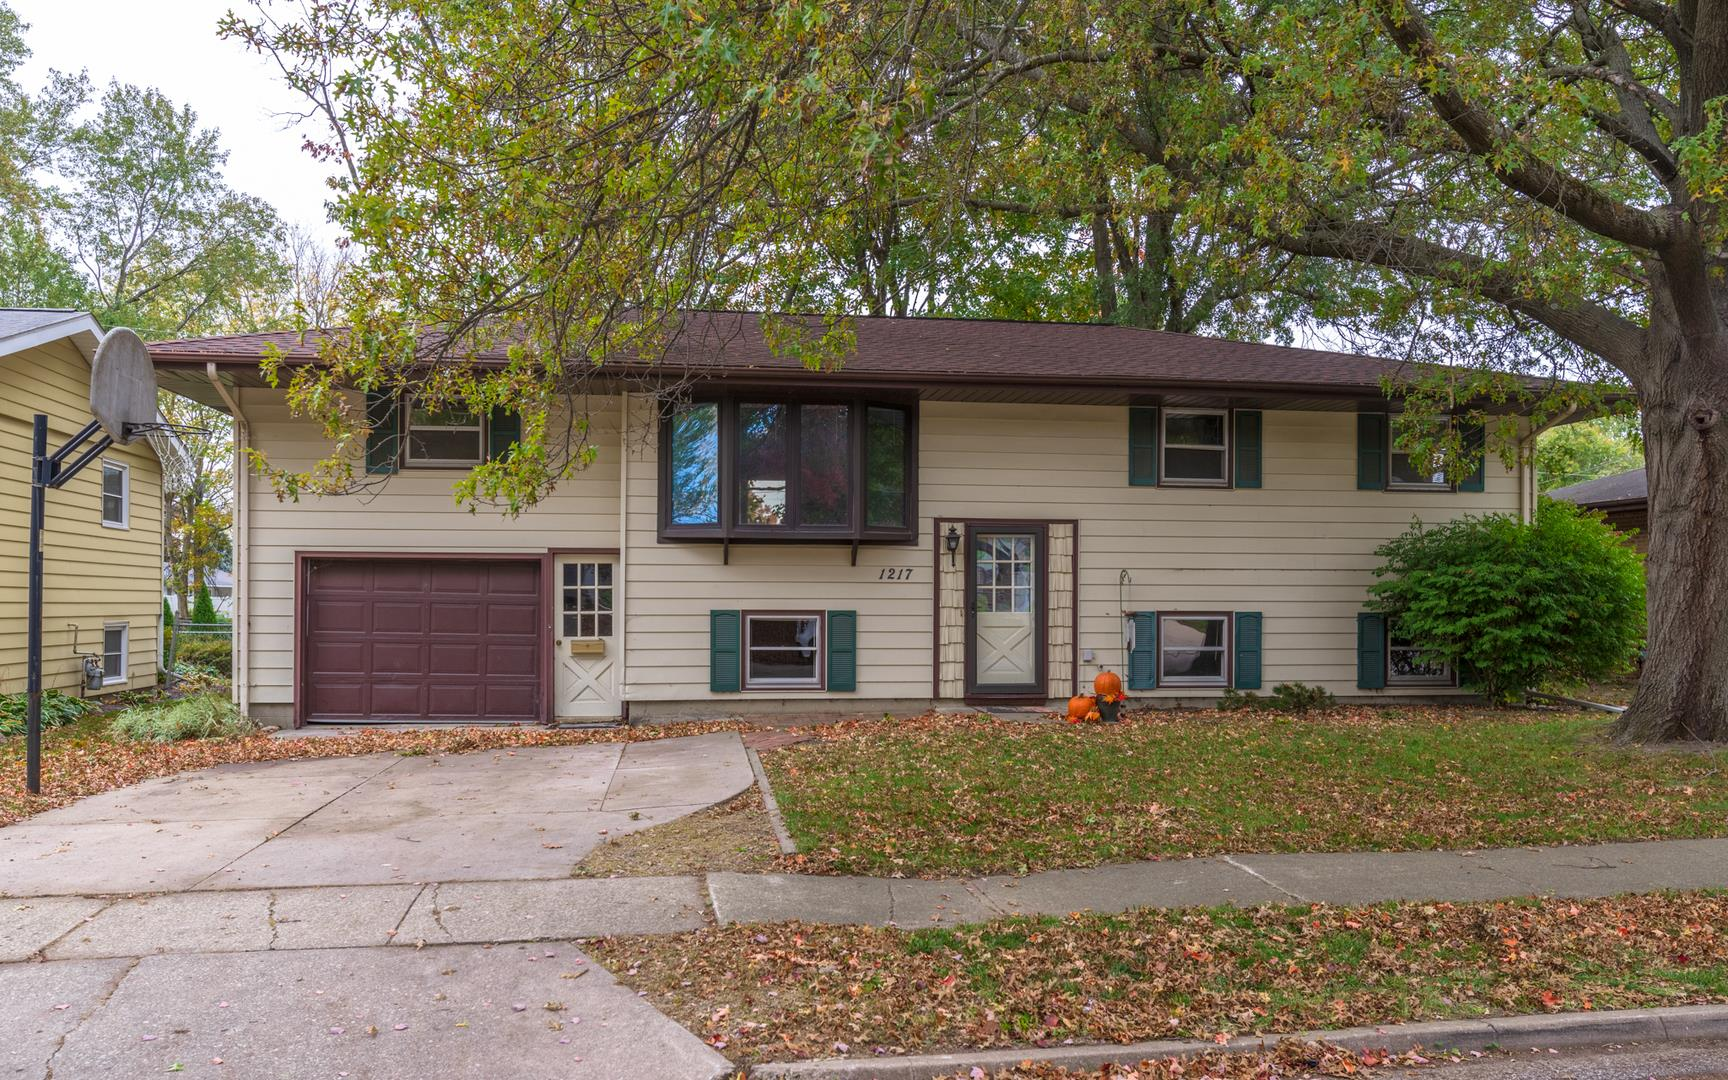 1217 Searle, Normal, IL 61761 - #: 10897689